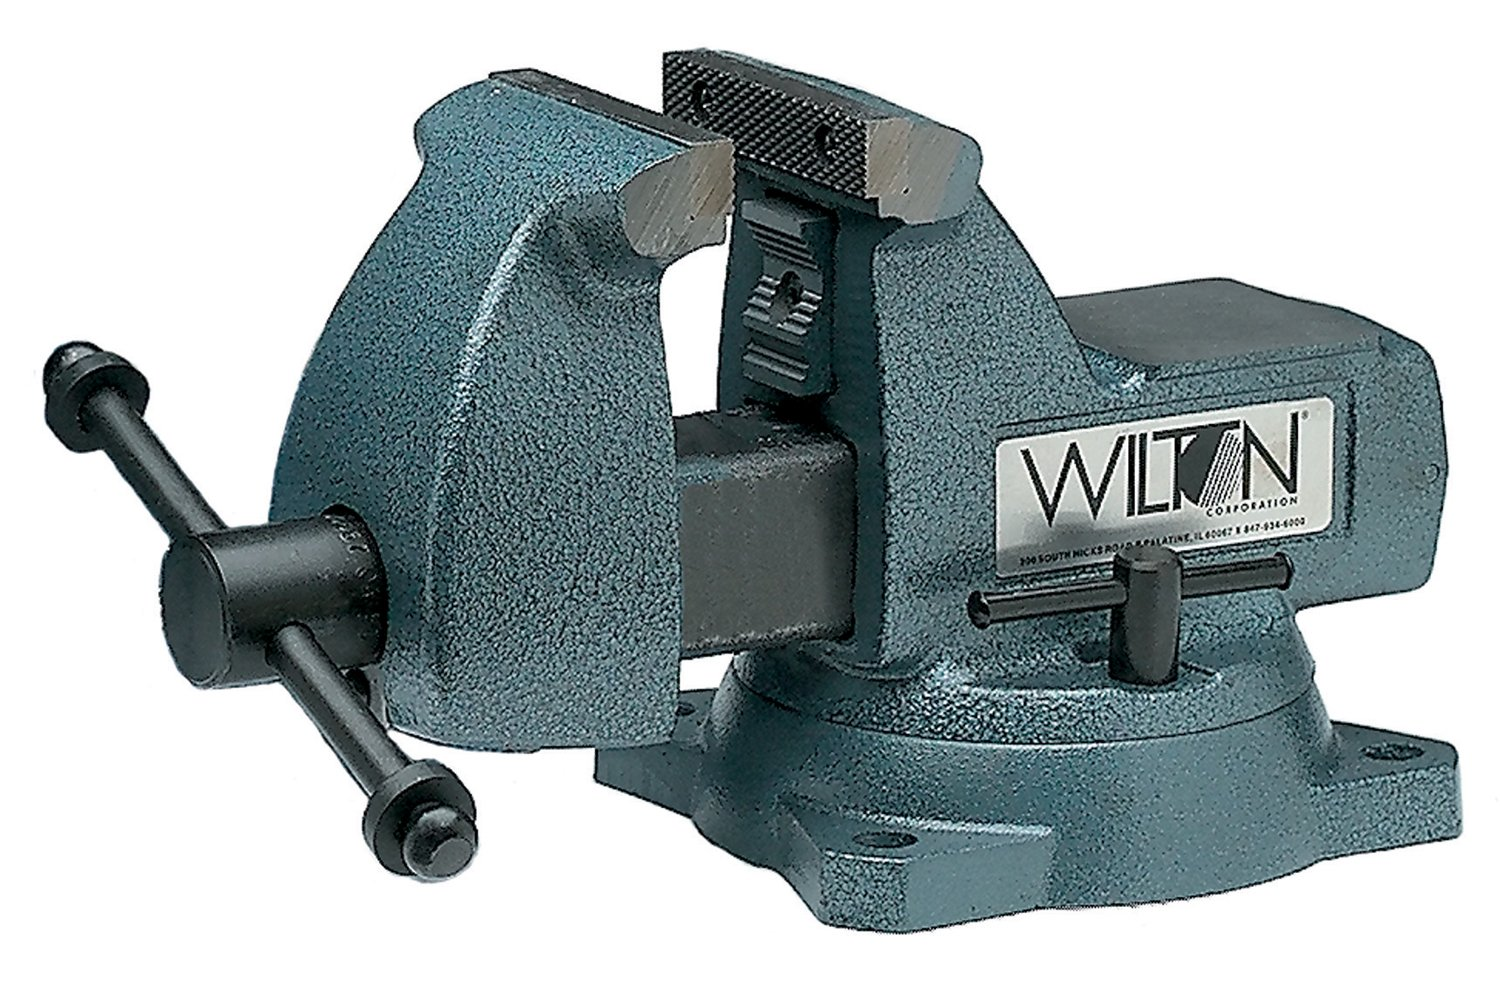 Wilton 21500 Machinists' Vises, 6'' Jaw, 4 1/8'' Throat, Swivel Base by Wilton